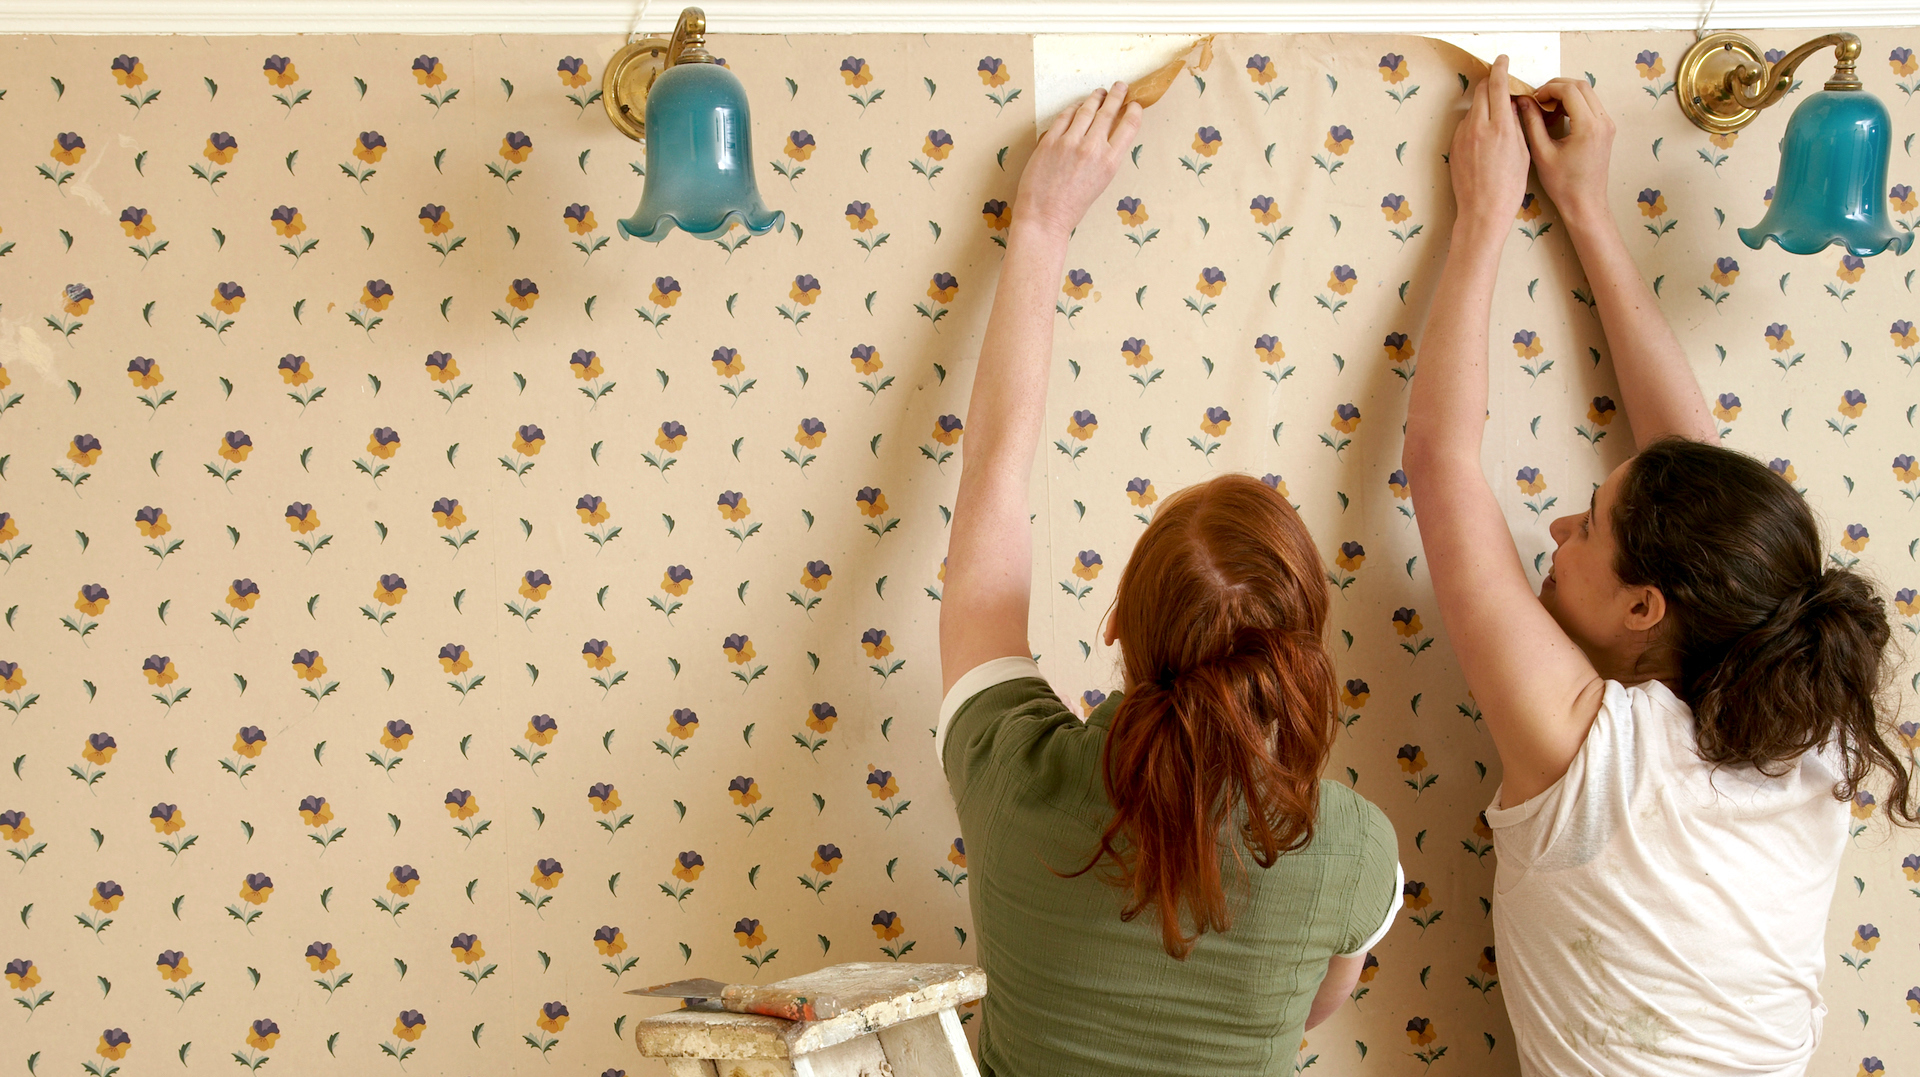 How To Remove Old Vinyl Wallpaper